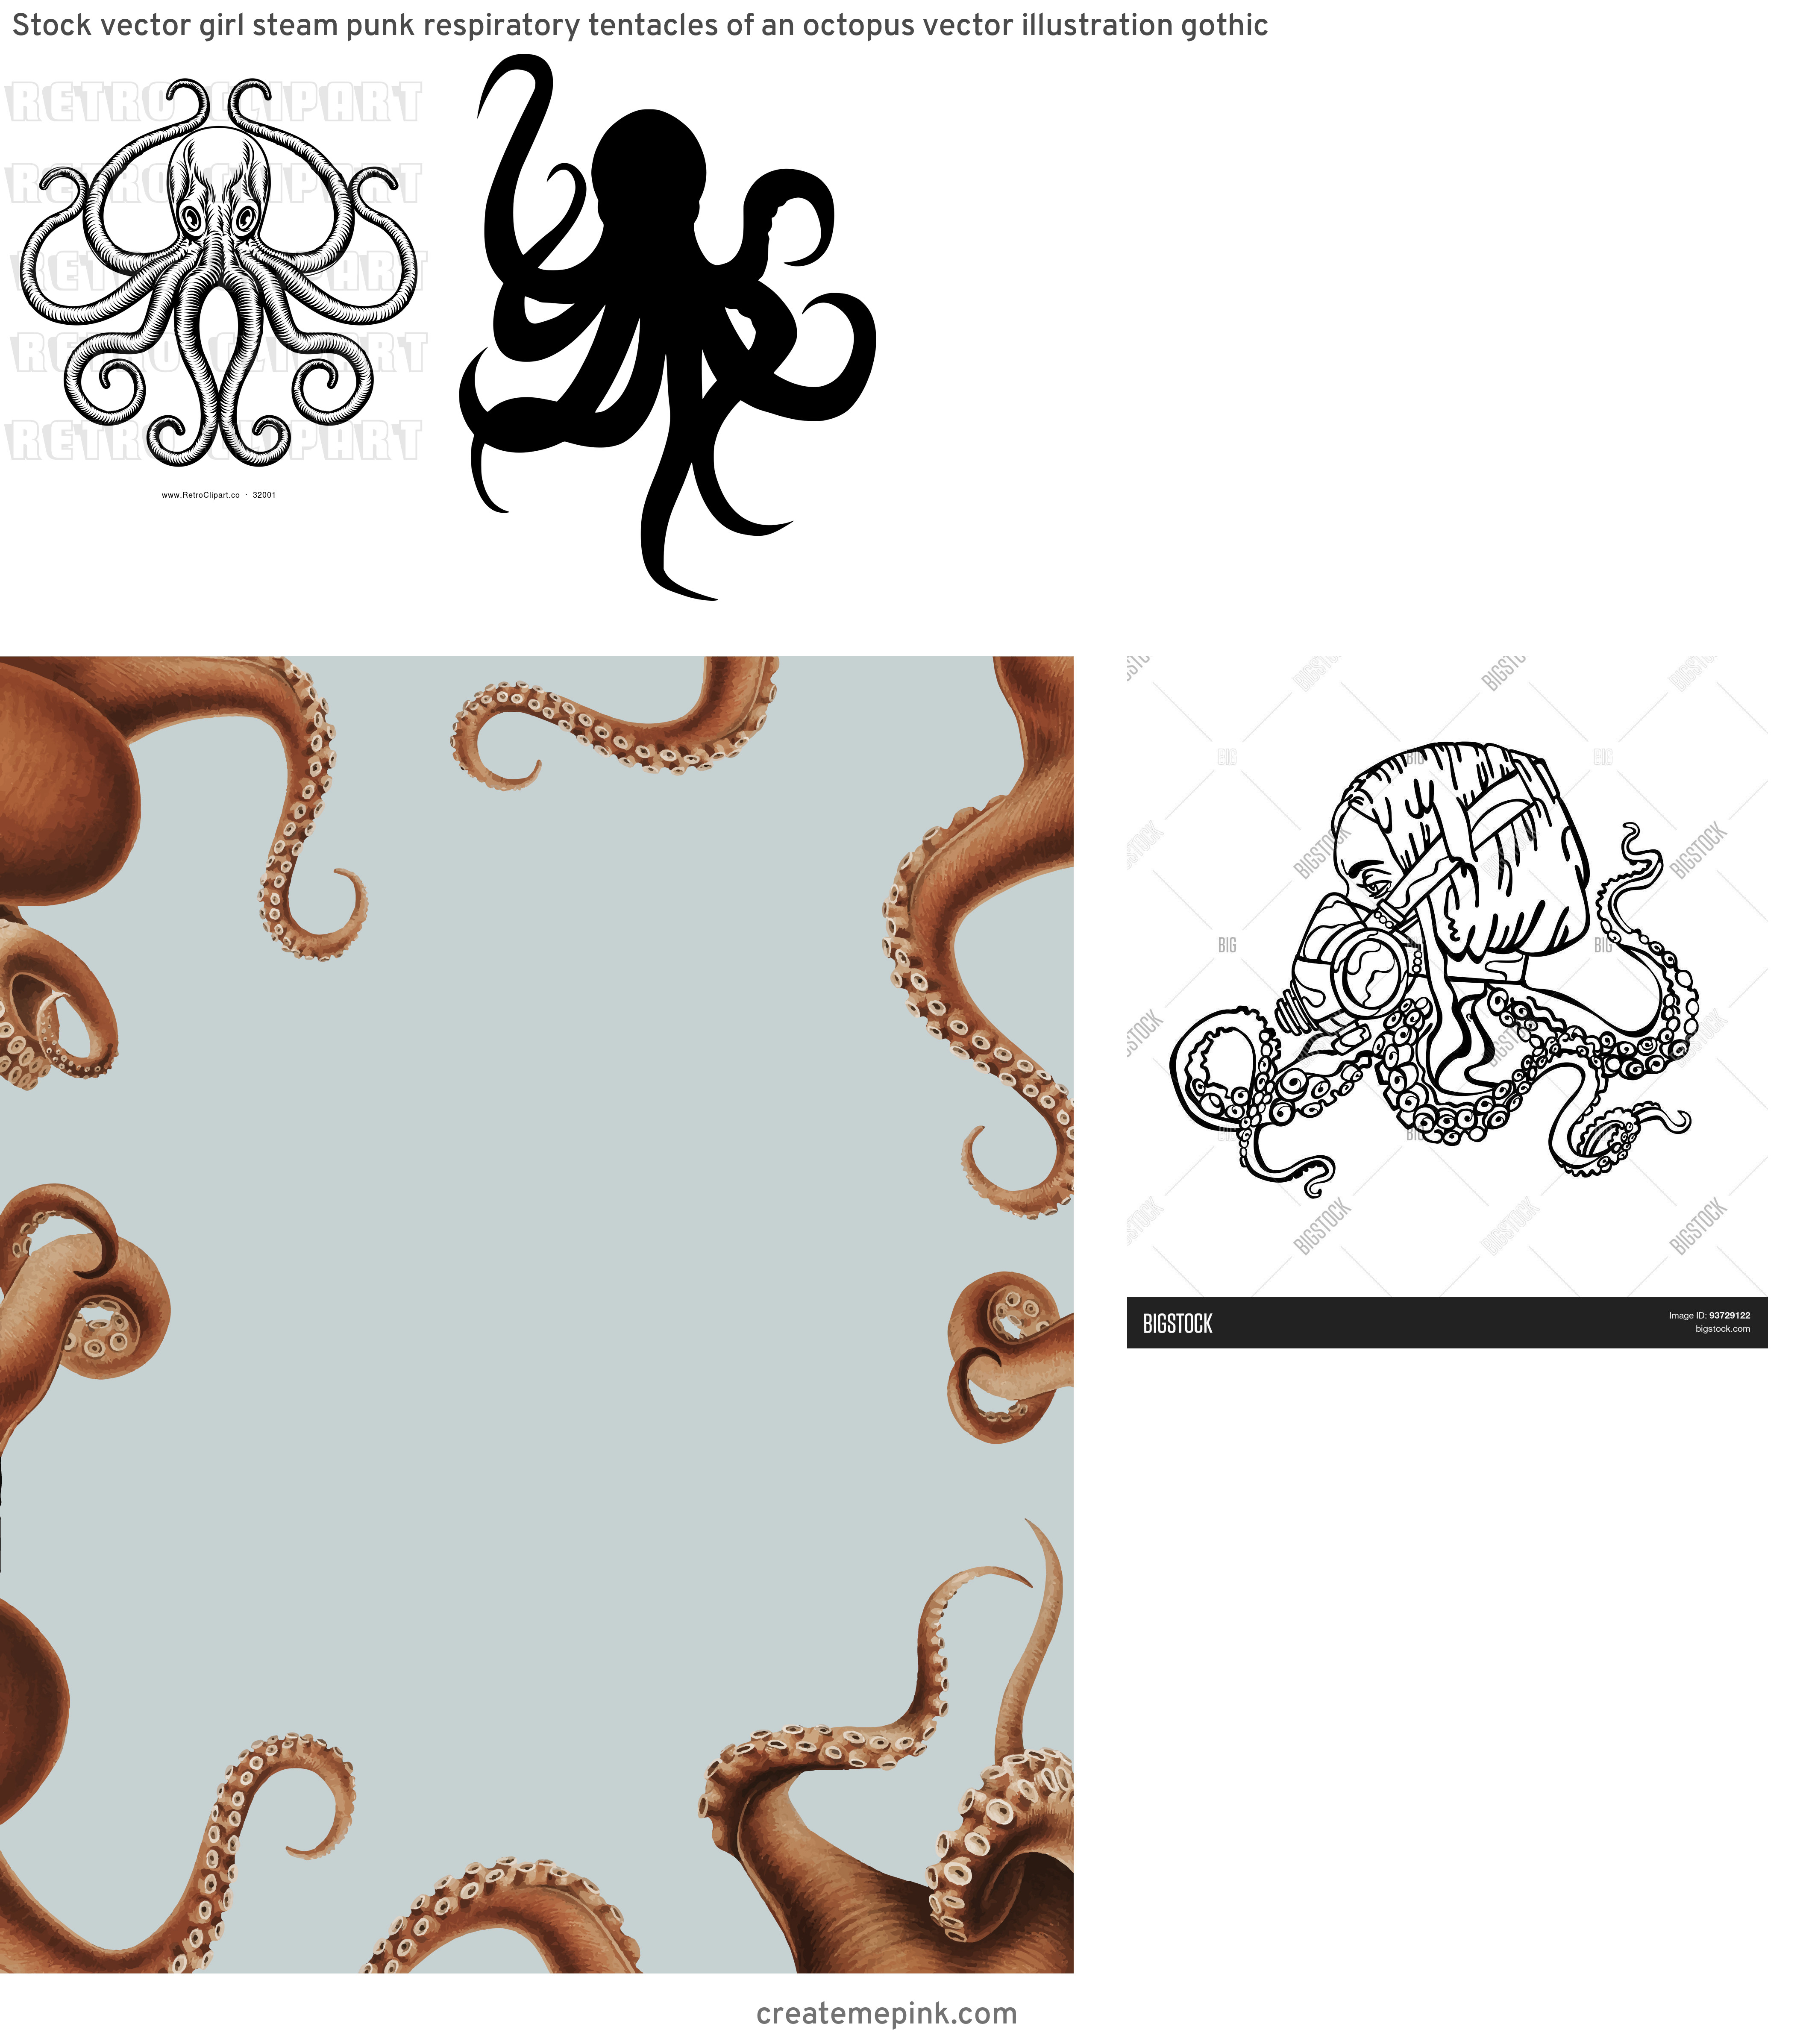 Vector Octopus Tentacles: Stock Vector Girl Steam Punk Respiratory Tentacles Of An Octopus Vector Illustration Gothic